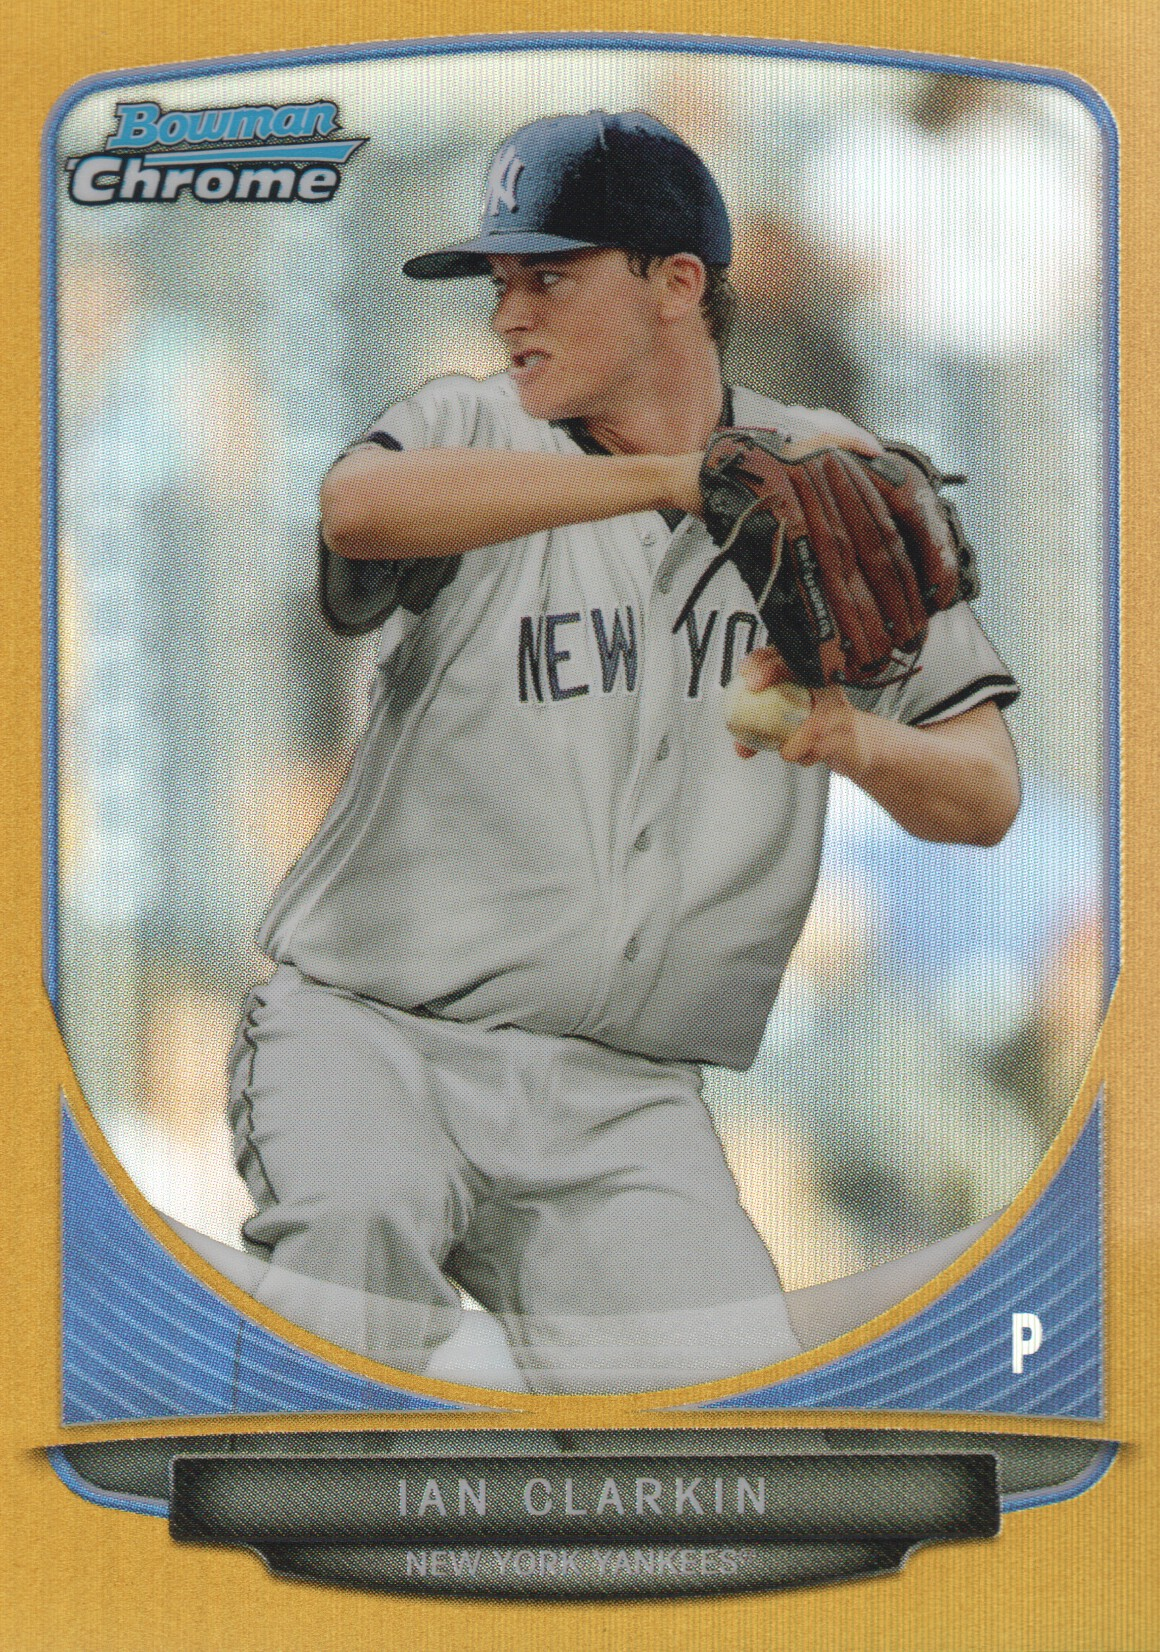 2013 Bowman Chrome Mini Gold Refractors #43 Ian Clarkin